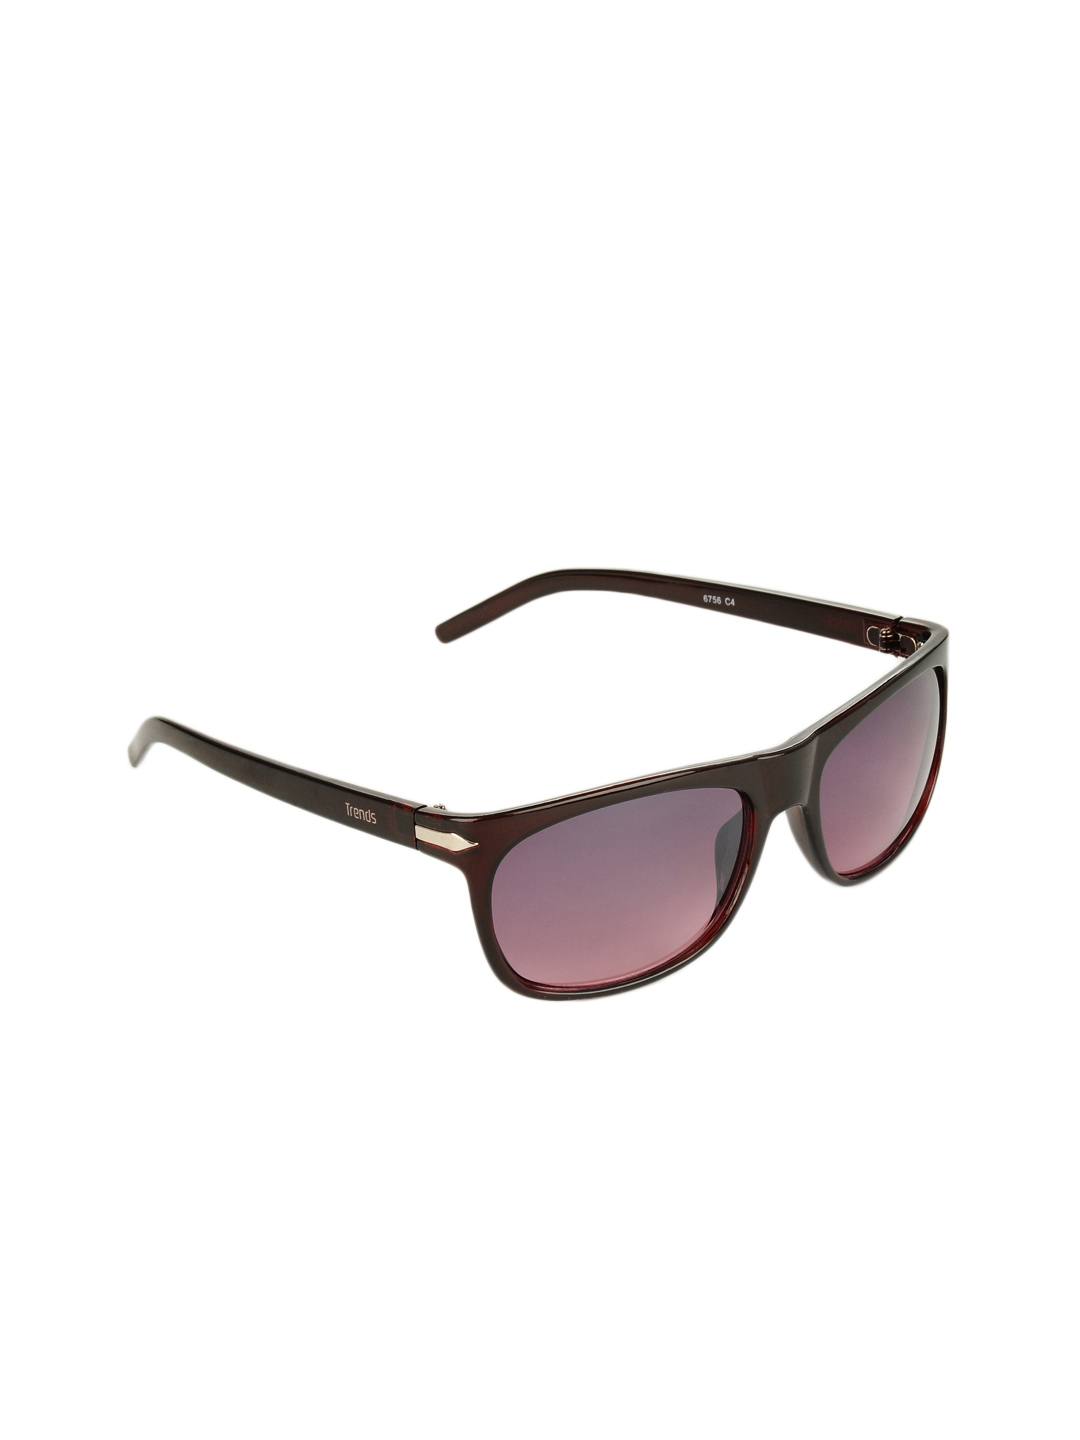 Myntra Sunglasses  power sunglasses power sunglasses online in india